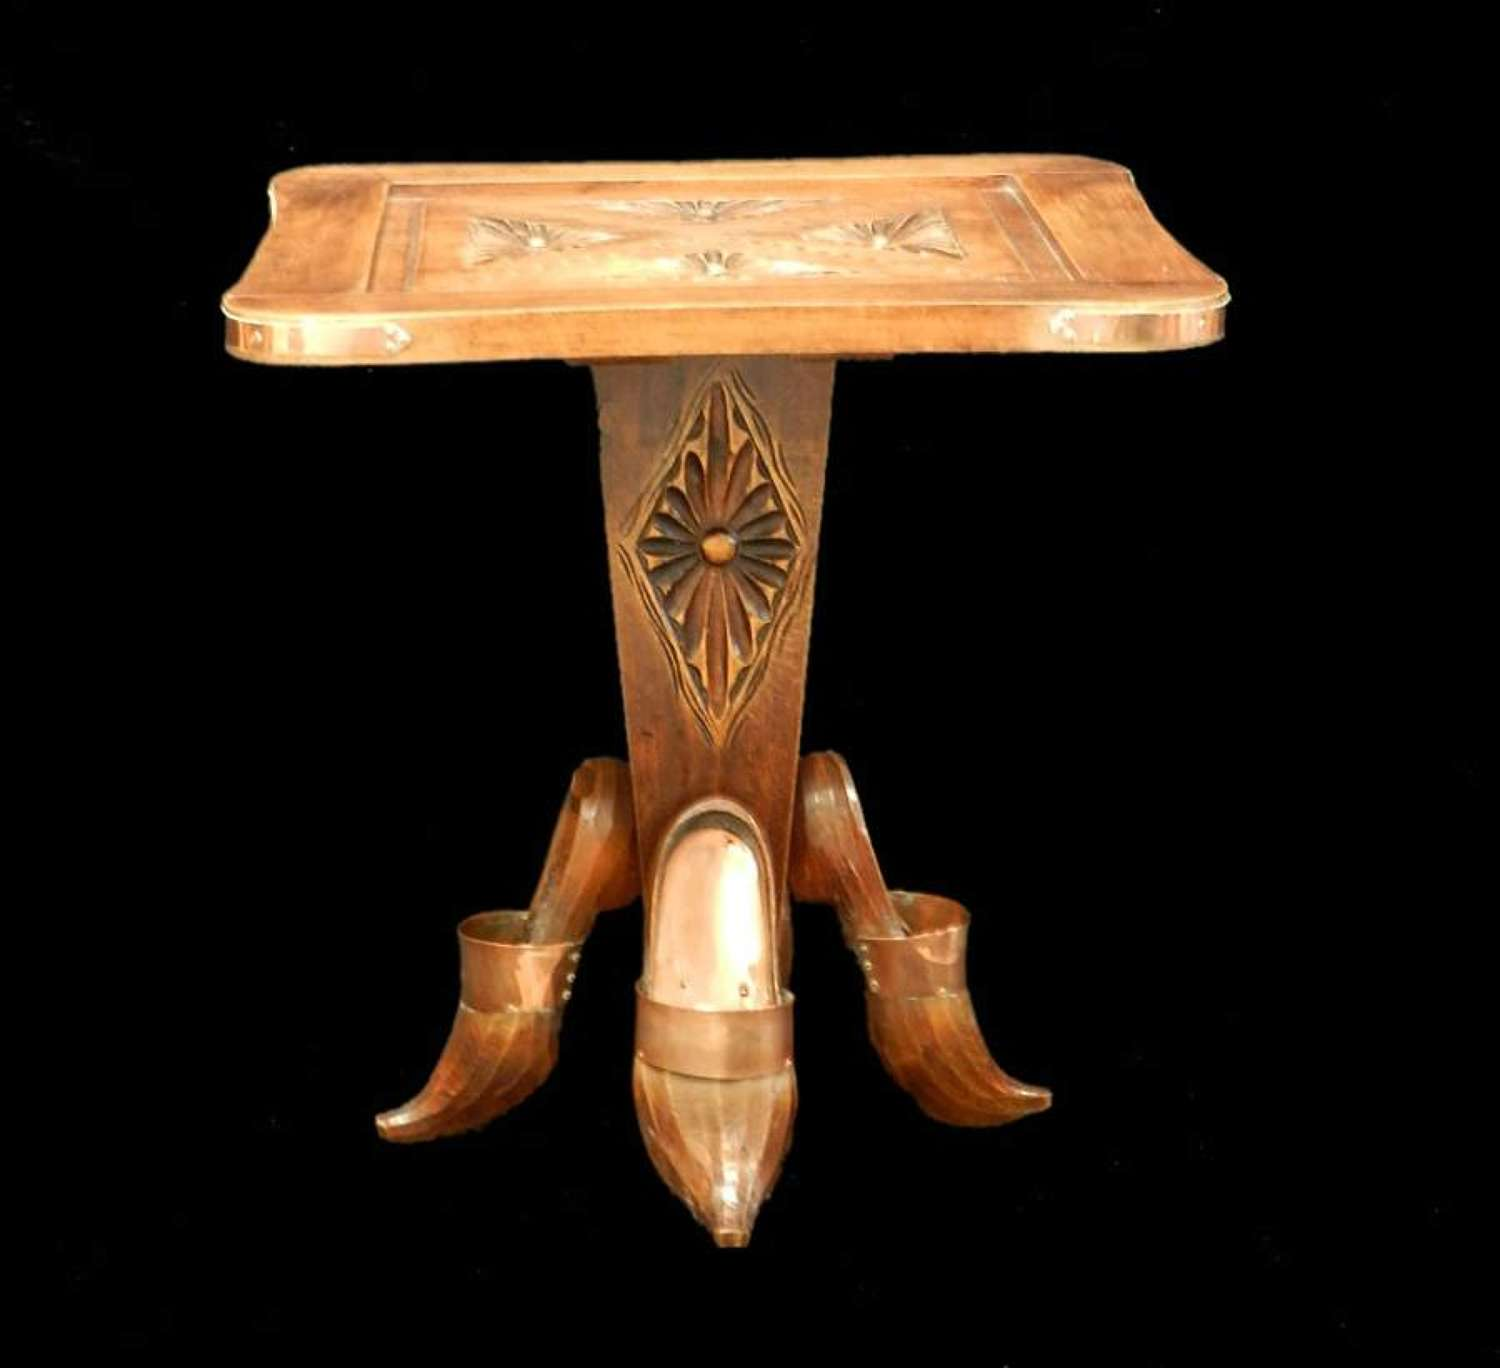 Quirky Vintage French Occasional or Side Table from Pays Basque